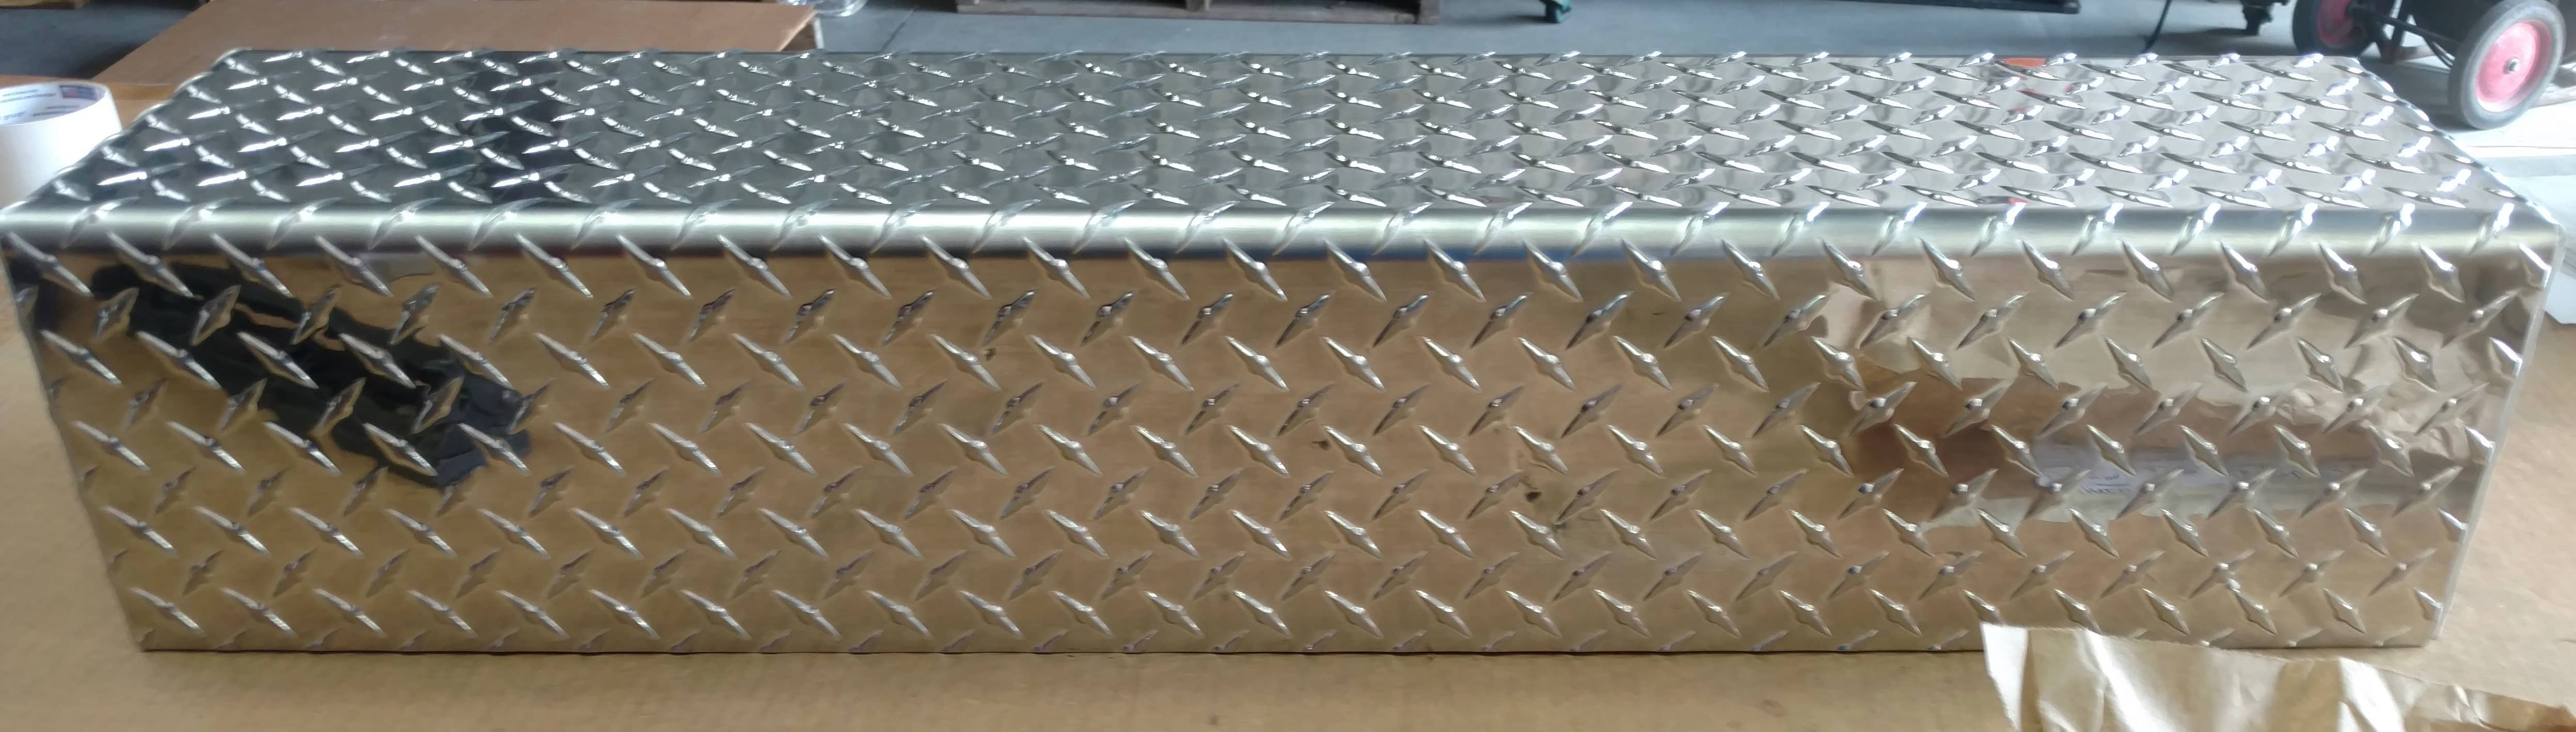 Aluminum Tread Plate Custom Cut Box Tray